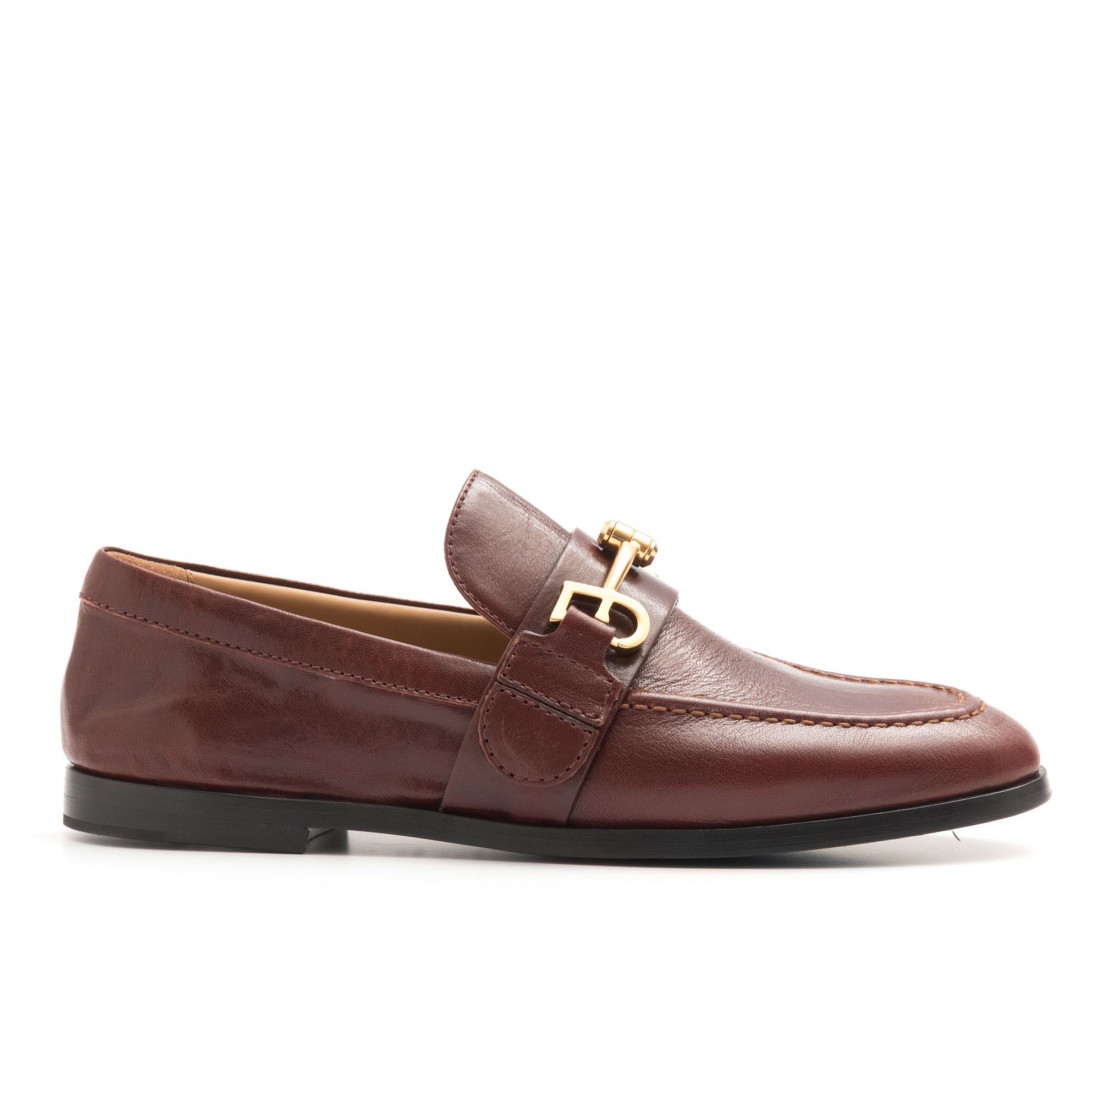 loafers woman fabi fd5755a00zoeshp403 4185